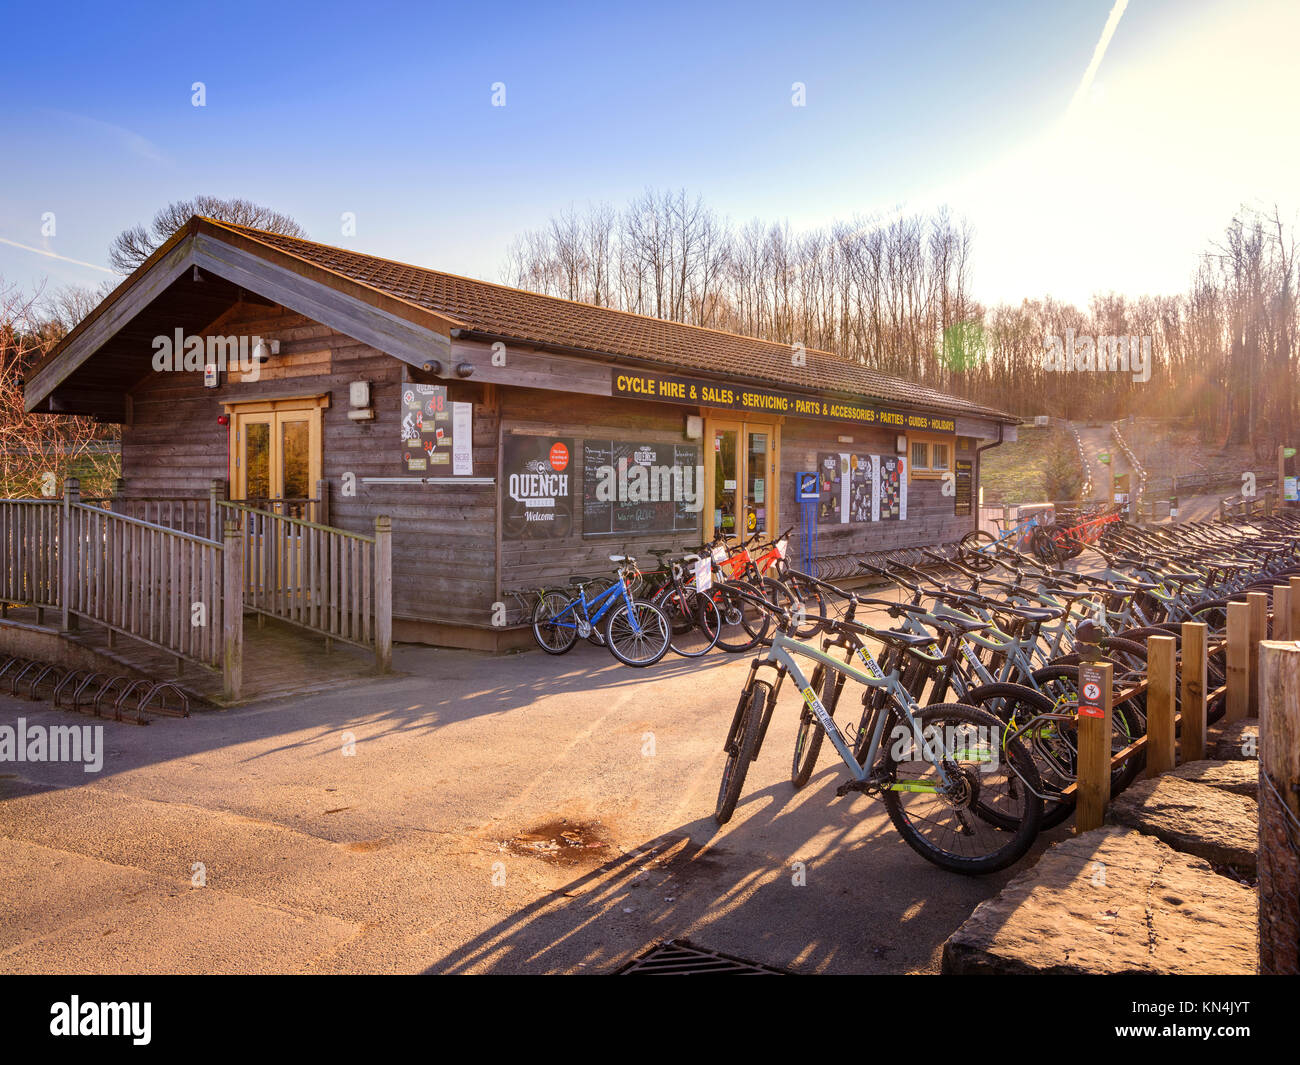 Quench cycle hire shop at Bedgebury National Pinetum and Forest in on the Sussex, Kent border. - Stock Image